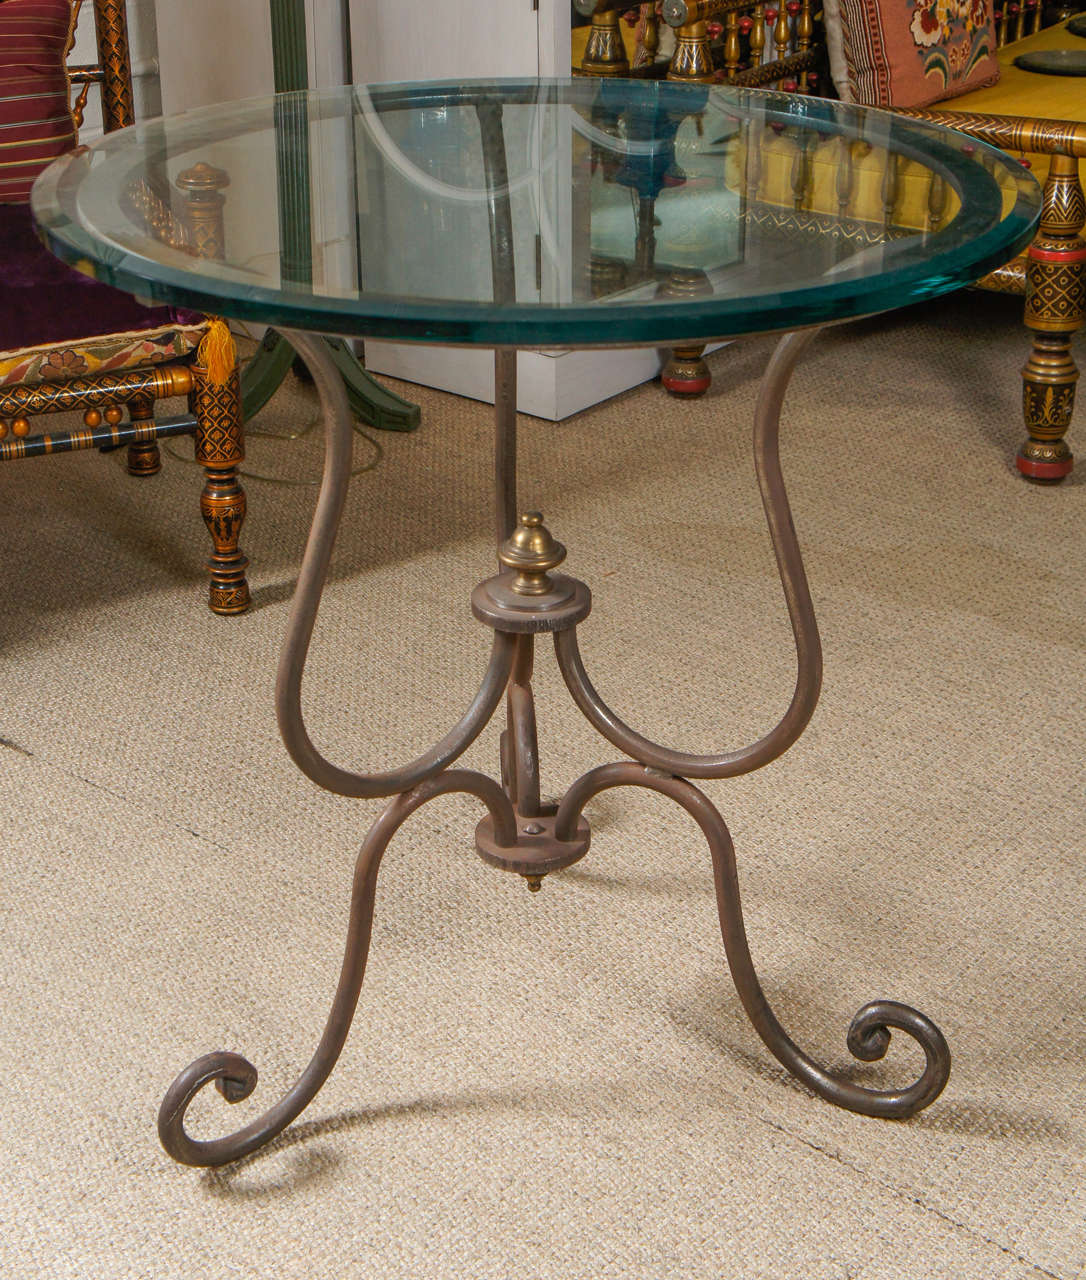 Here is an iron table with a scroll motif and a thick glass top.